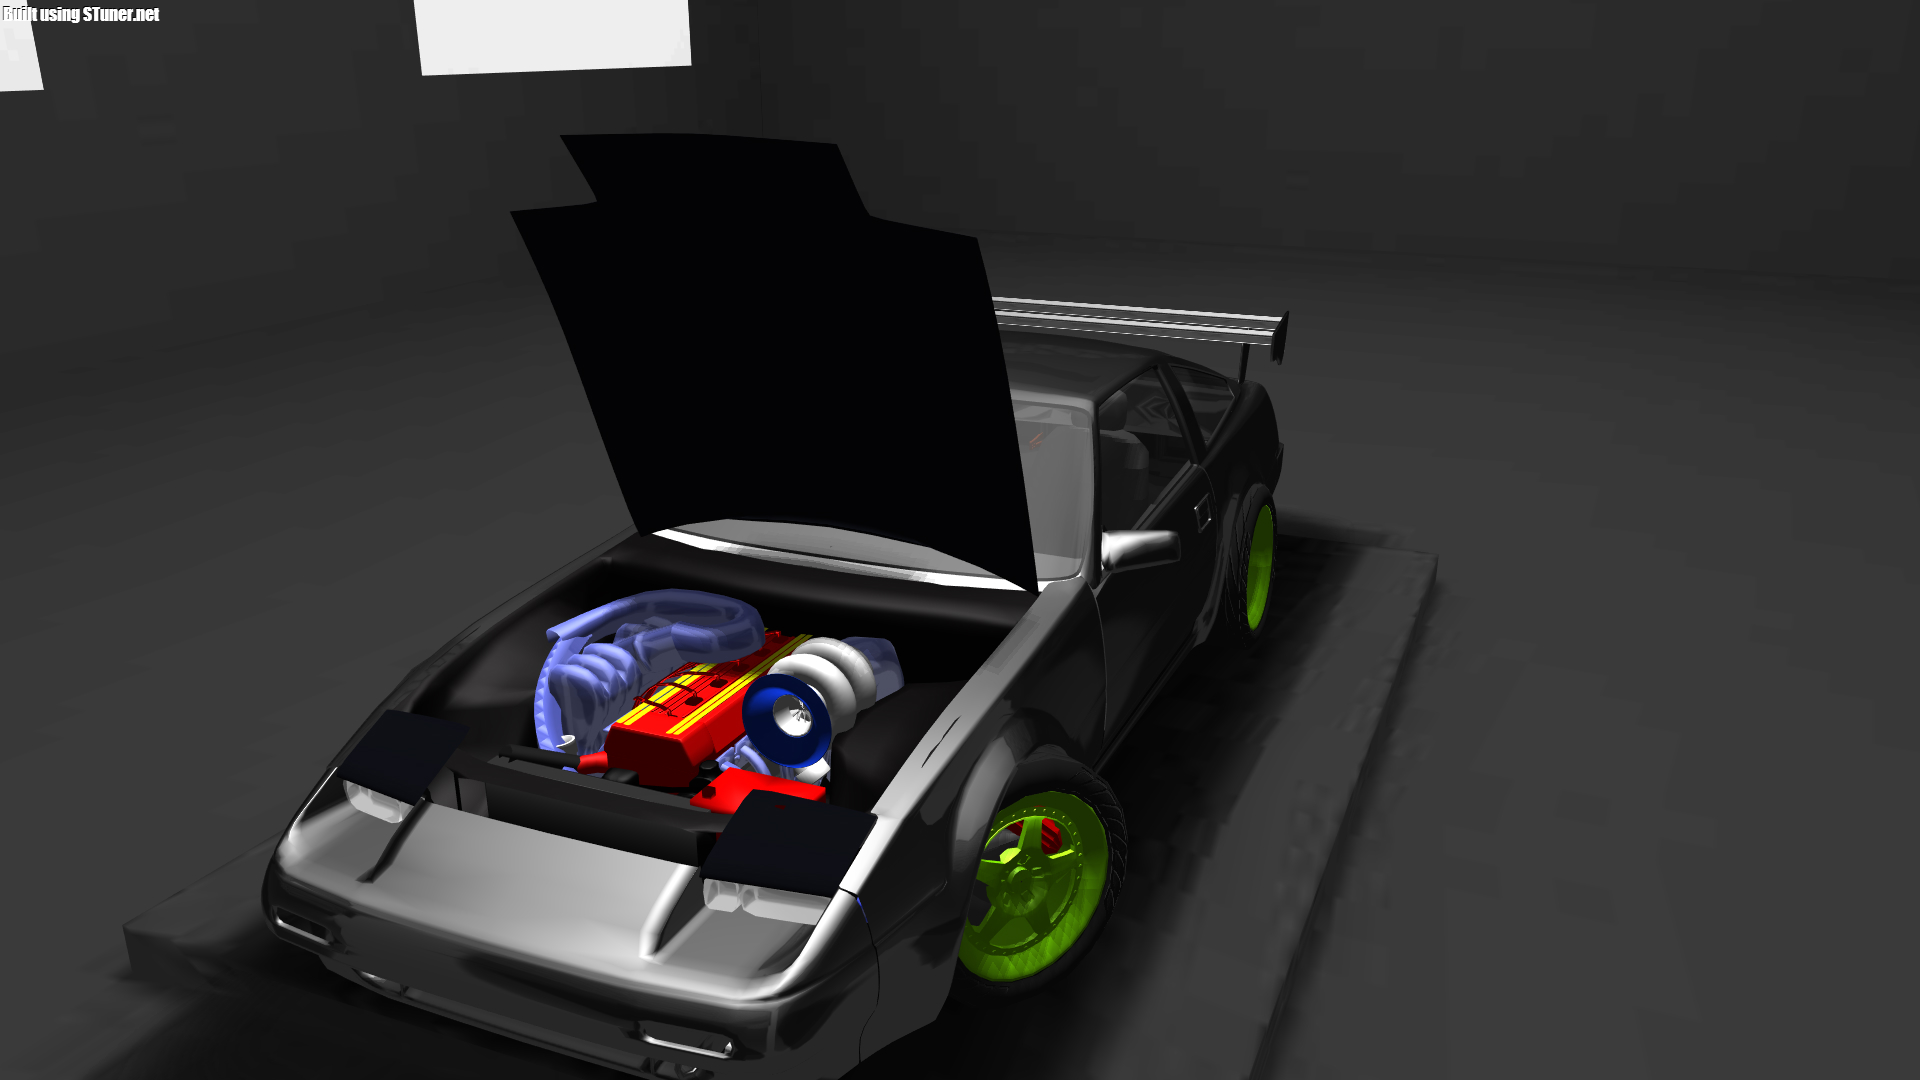 3Dtuning com! post your creations! | Page 11 | BeamNG